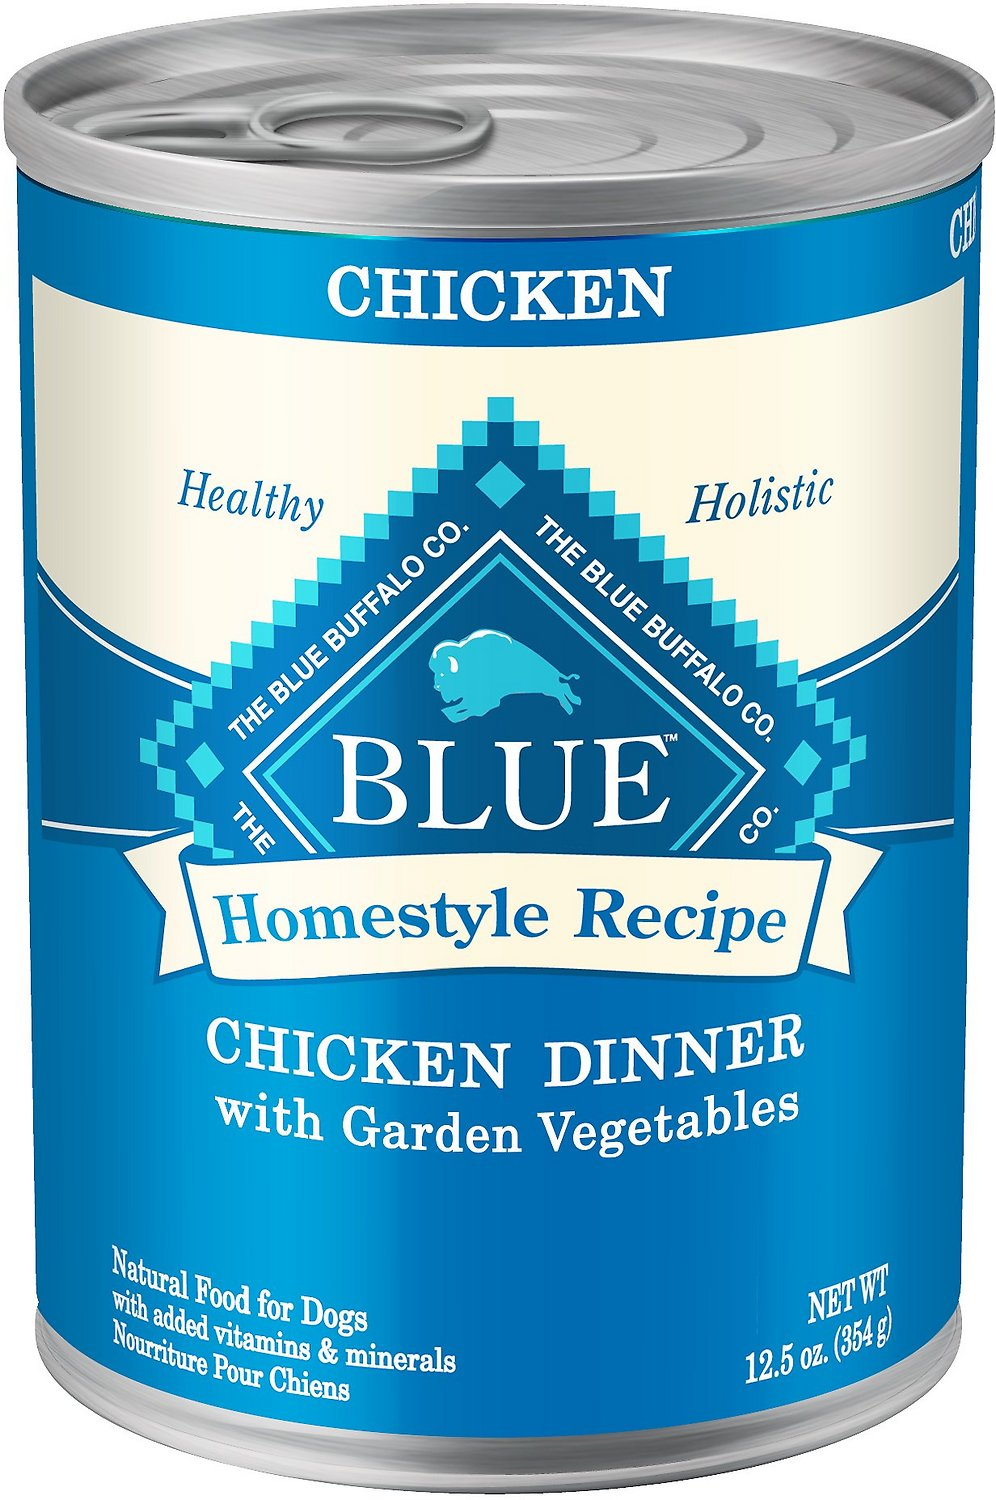 Blue Buffalo Homestyle Recipe Chicken Dinner with Garden Vegetables & Brown Rice Canned Dog Food, 12.5-oz Size: 12.5-oz